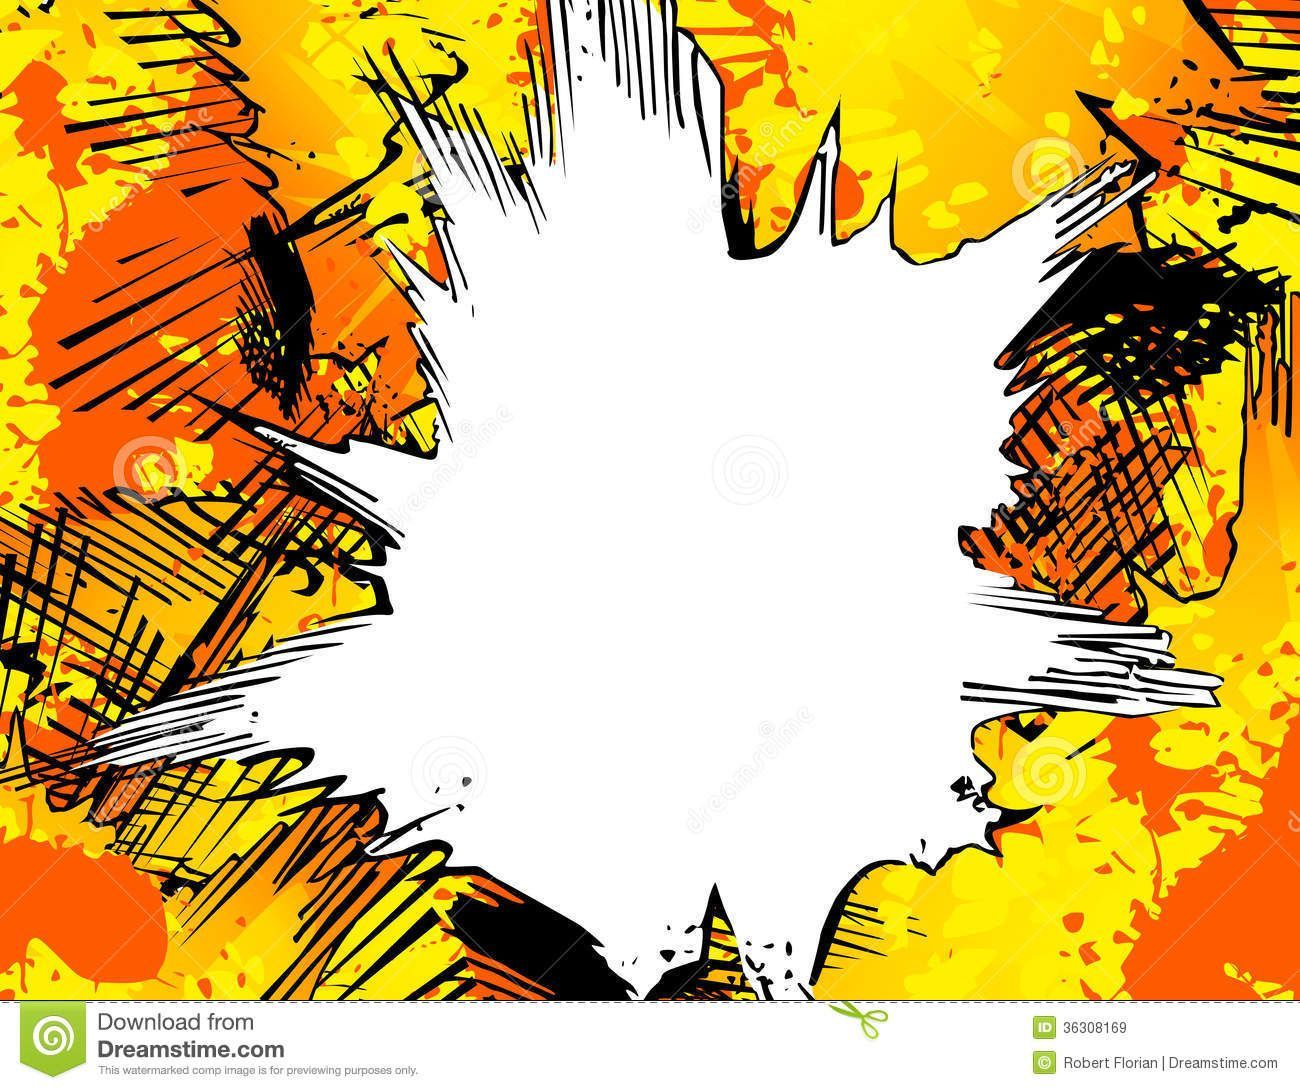 1300x1090 Abstract Explosion Background Royalty Free Stock Images - Image ...